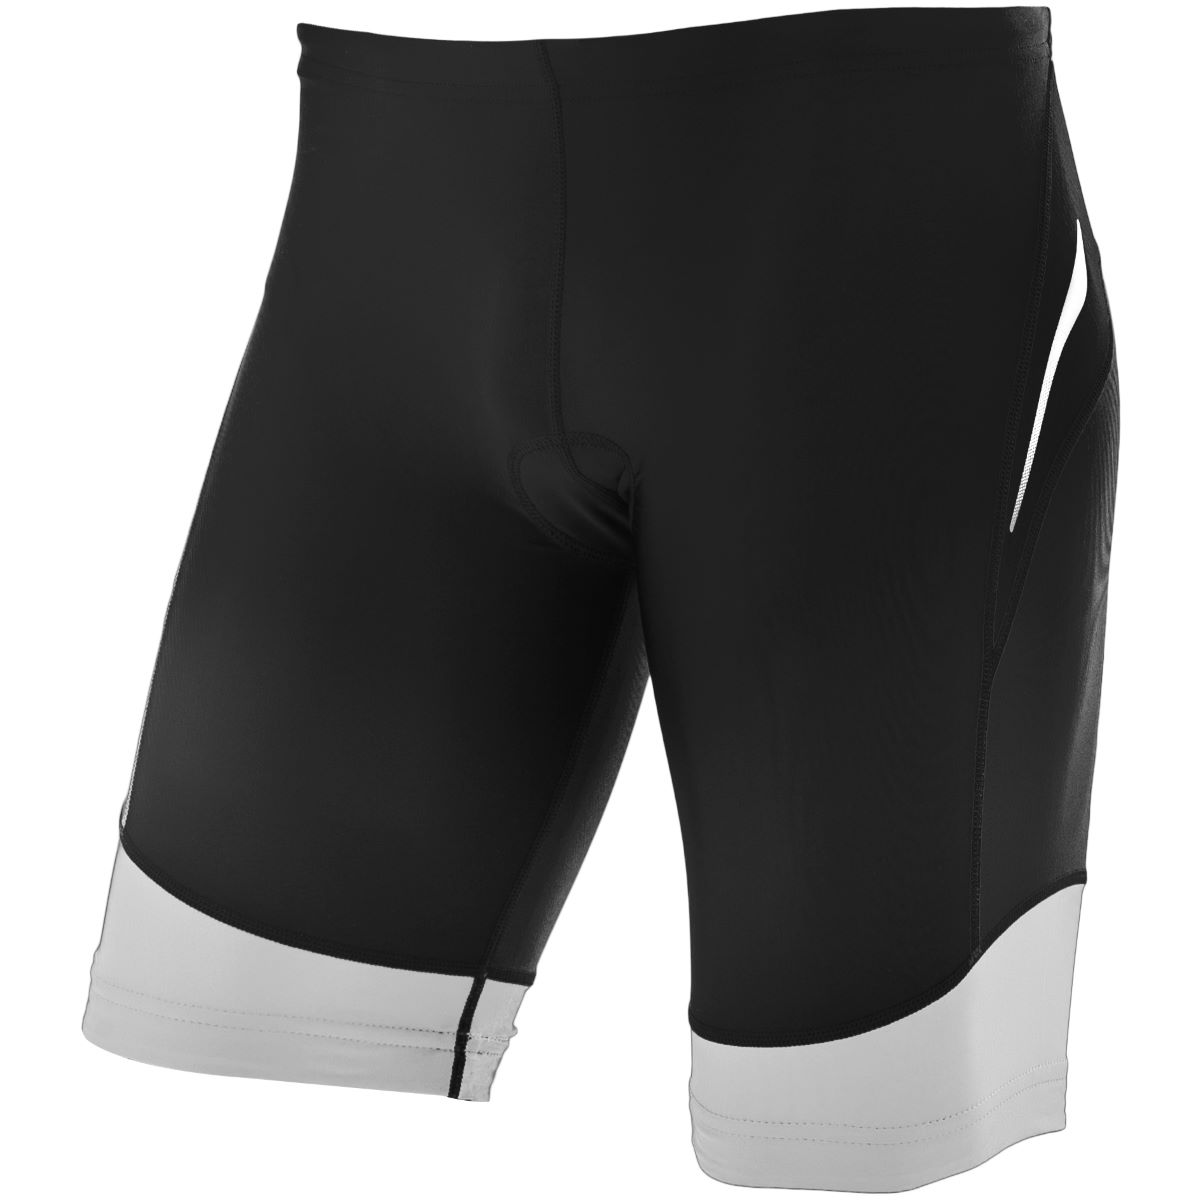 Orca core tri shorts tri shorts black white 2016 fvc34802